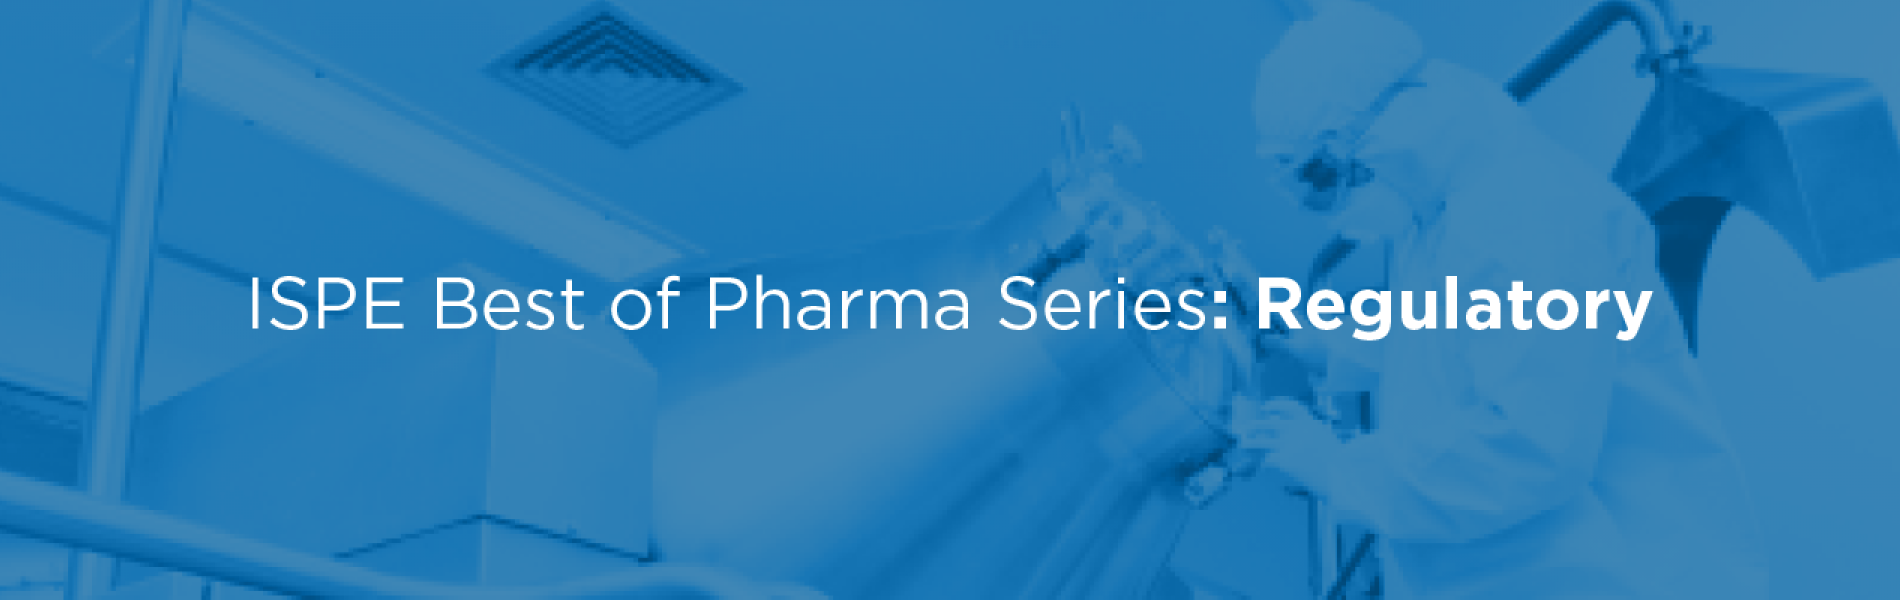 ISPE Best of Pharma Series: Regulatory